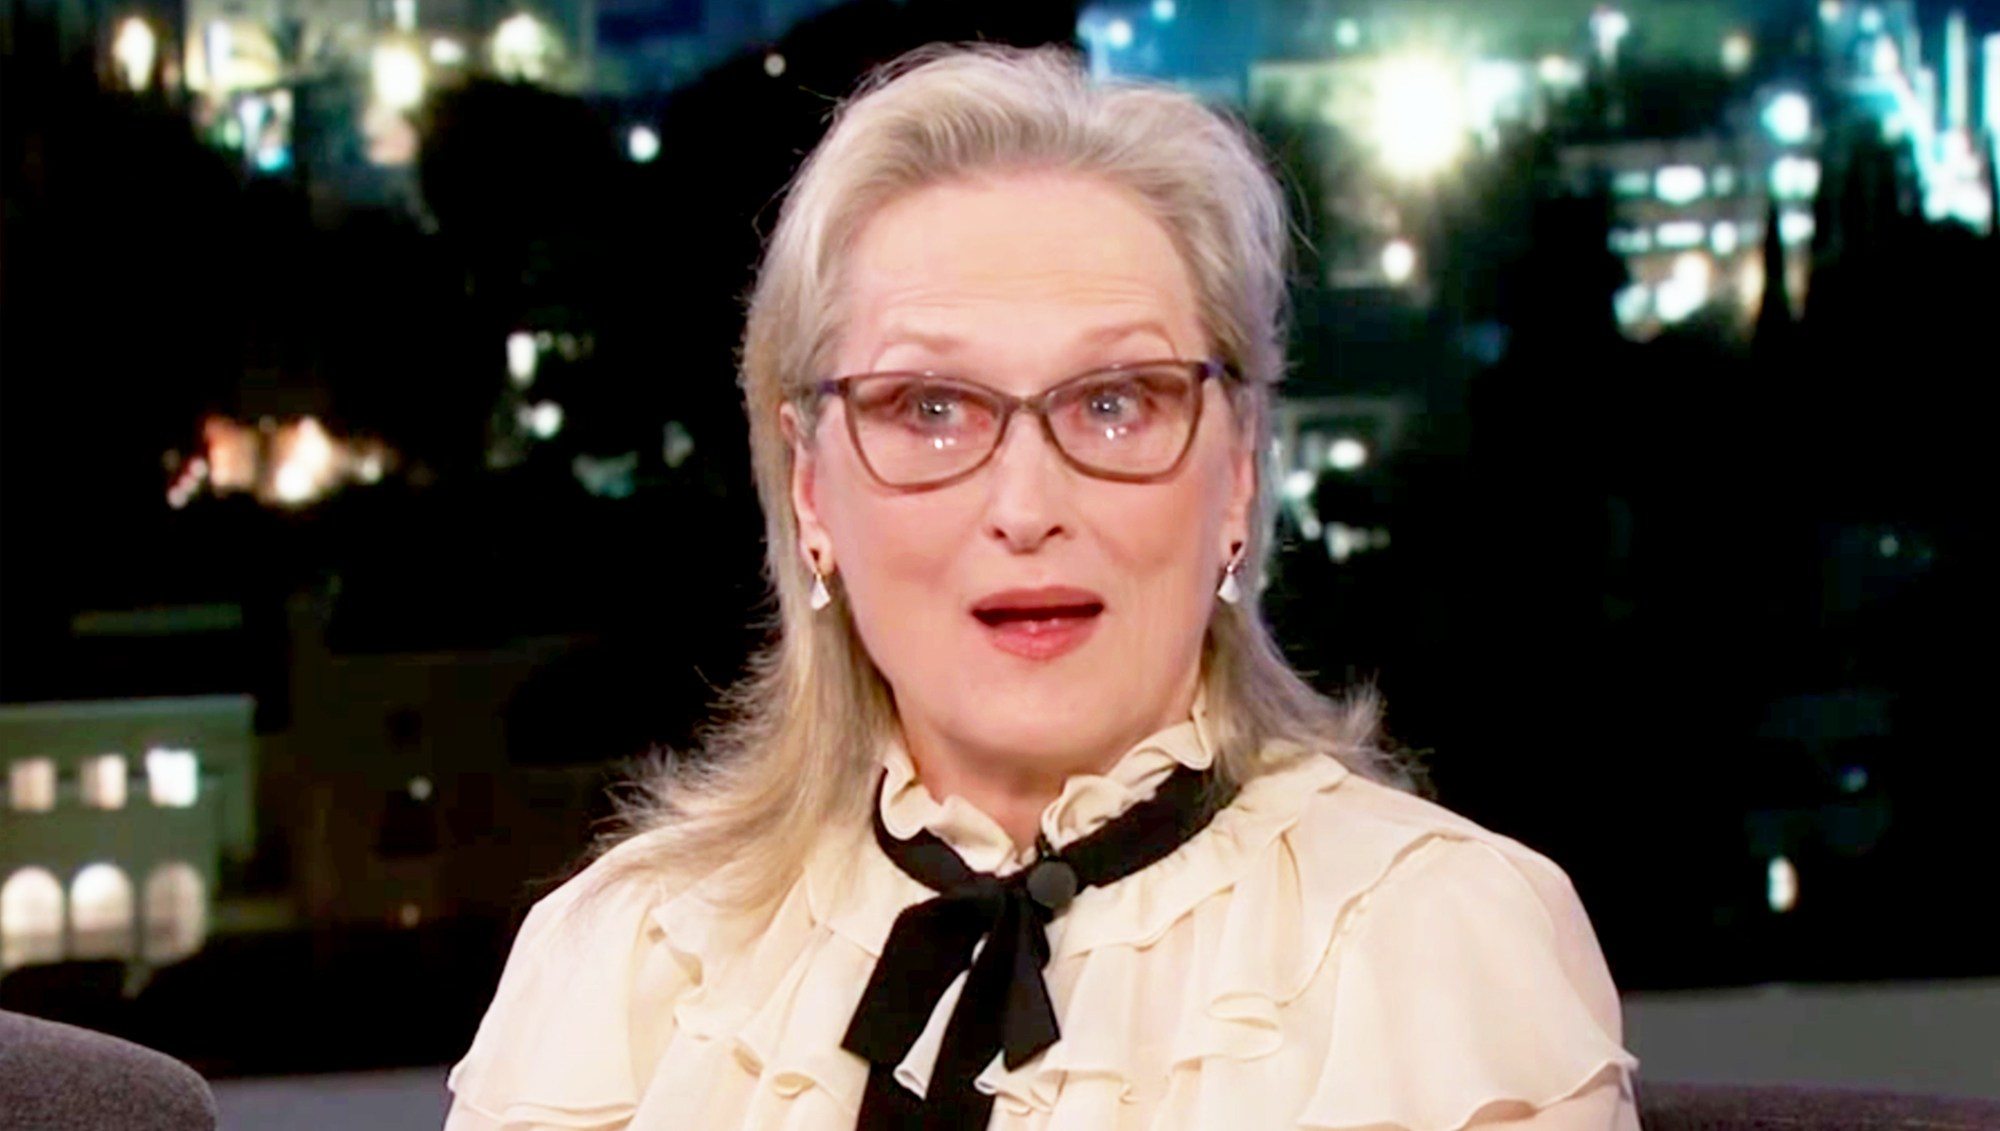 Meryl Streep on 'Jimmy Kimmel Live'